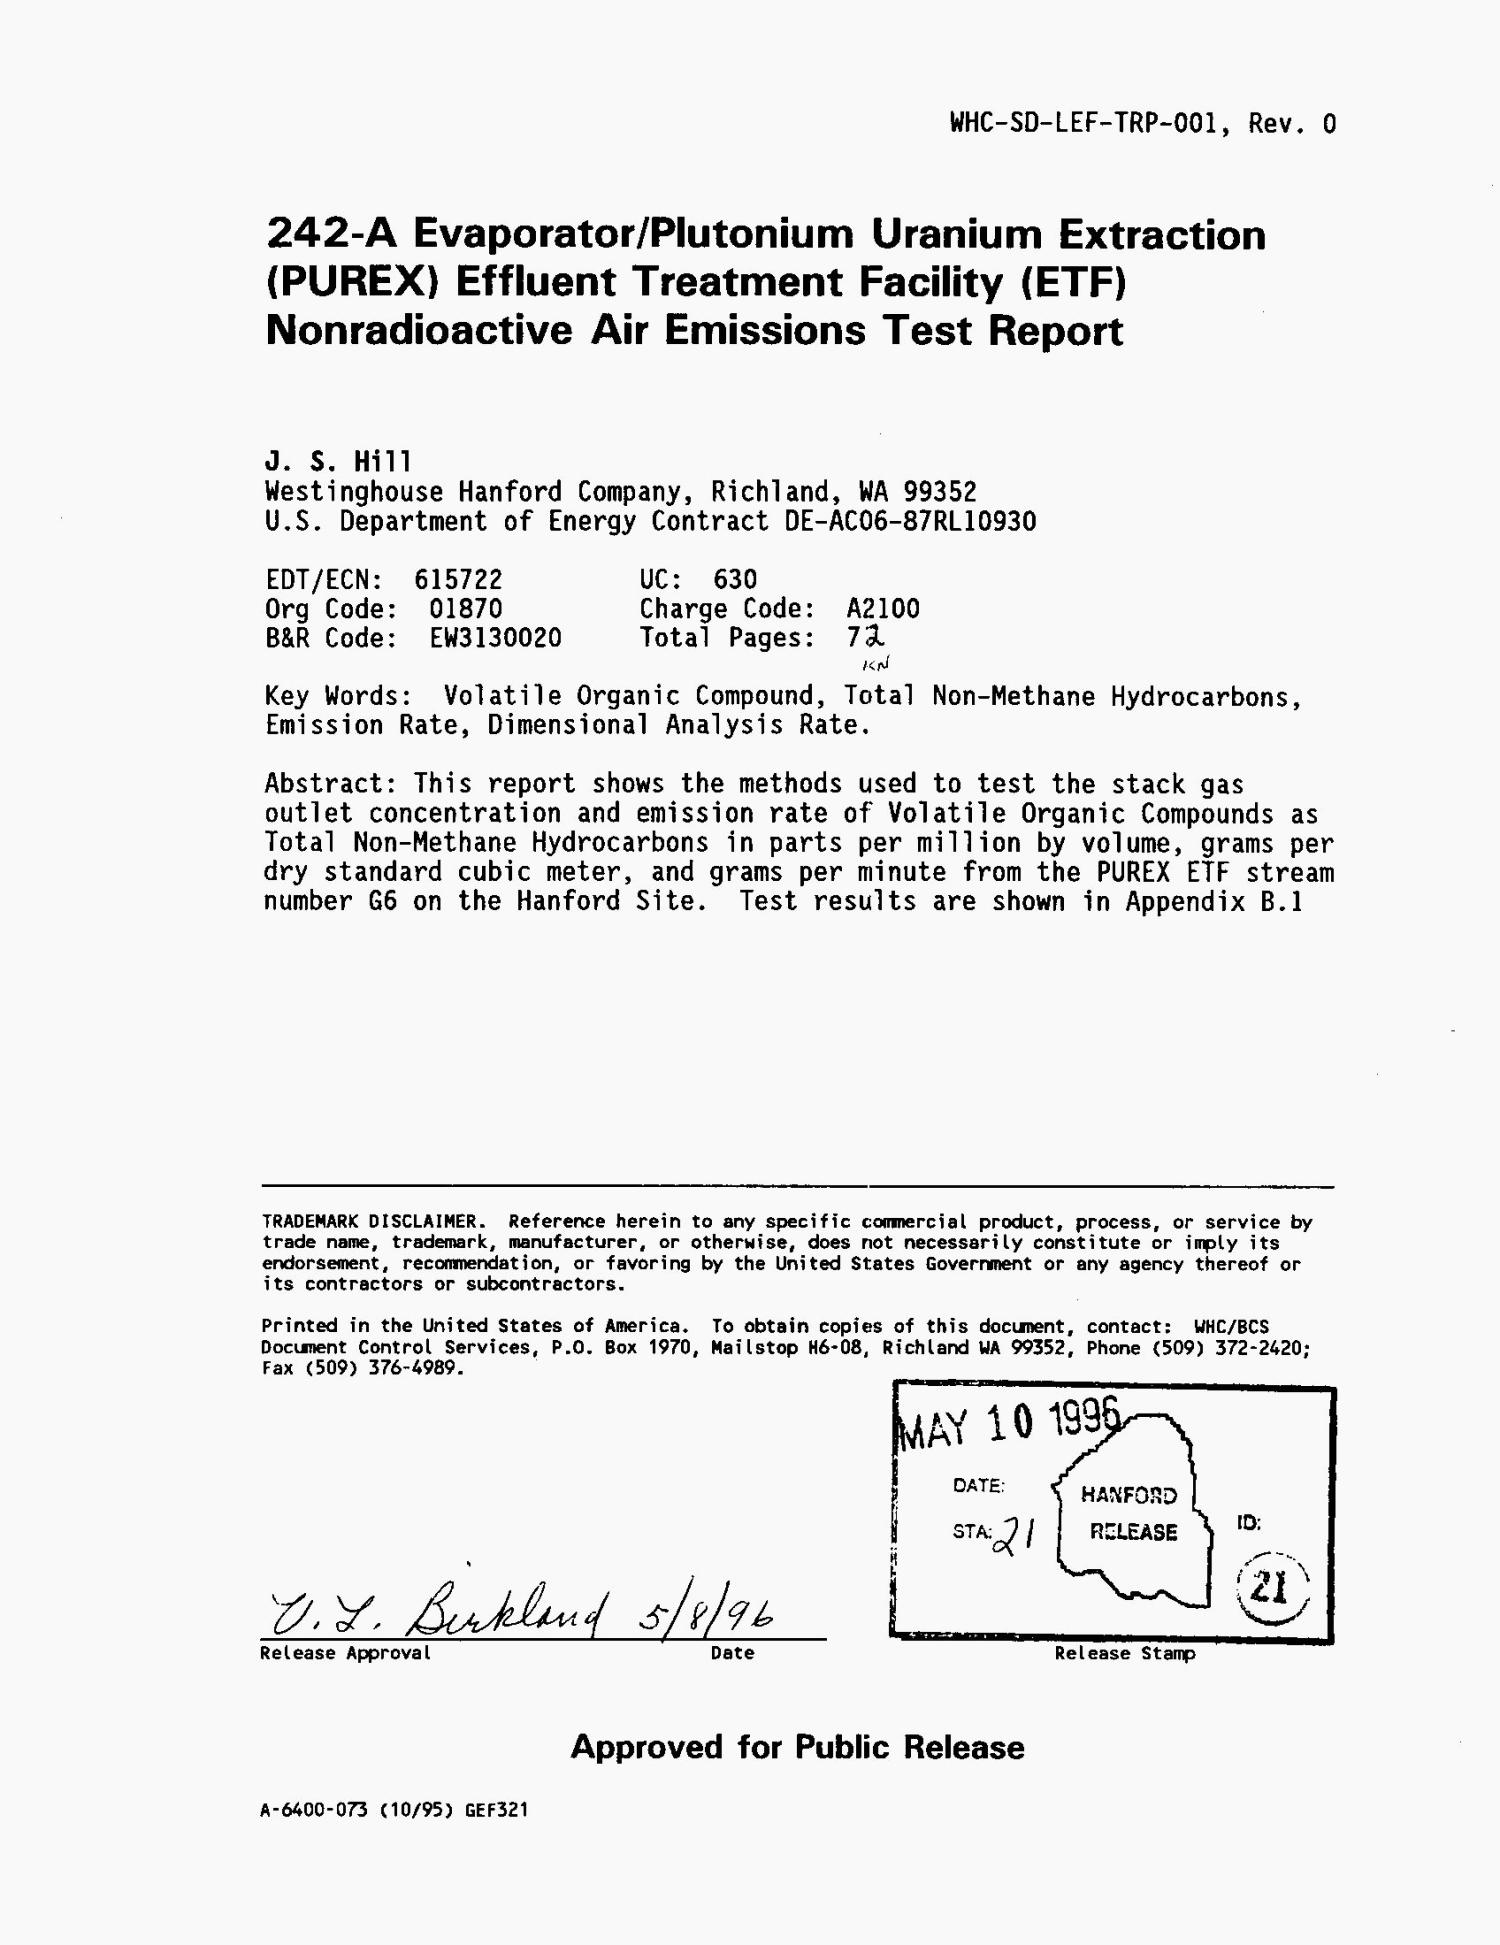 242-A Evaporator/plutonium uranium extraction (PUREX